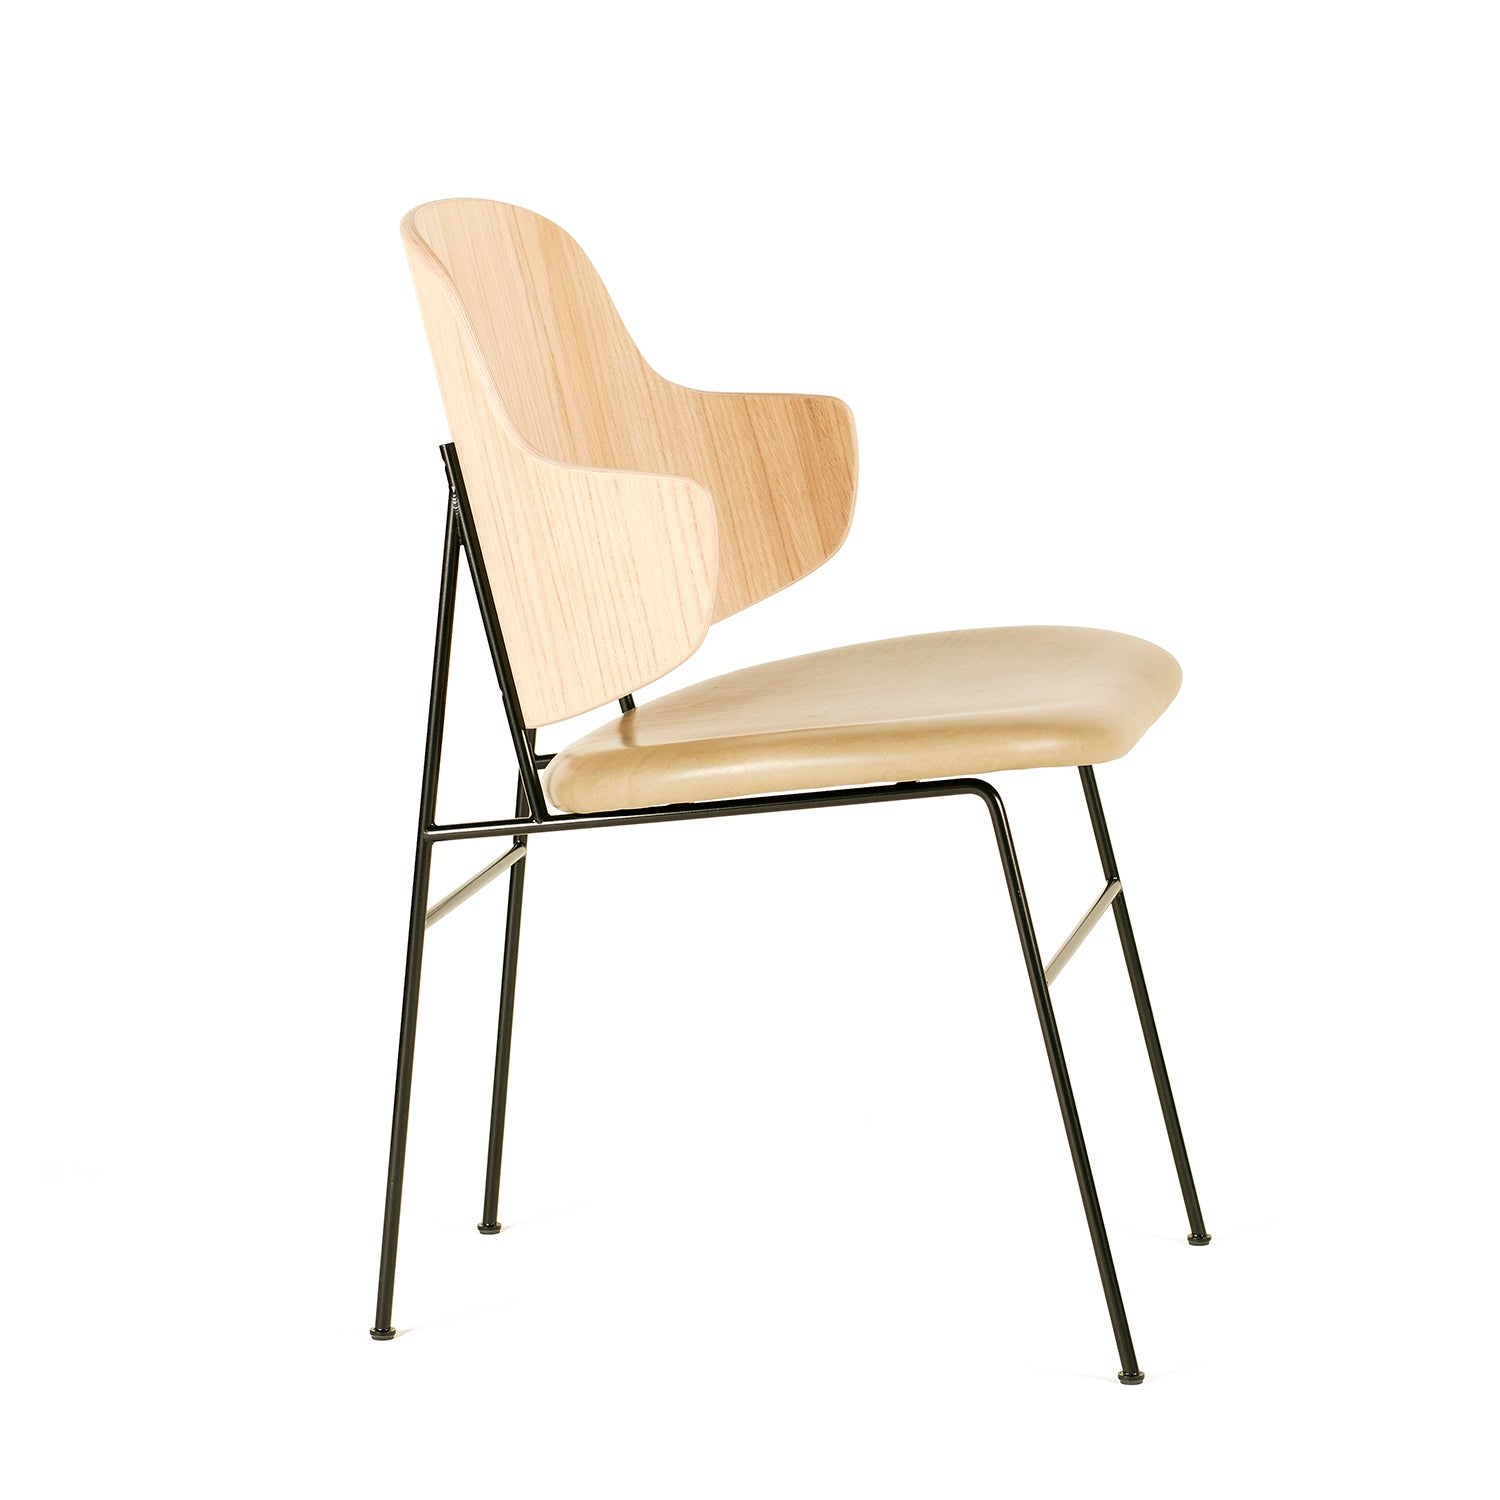 Penguin Dining Chair: Seat Upholstered